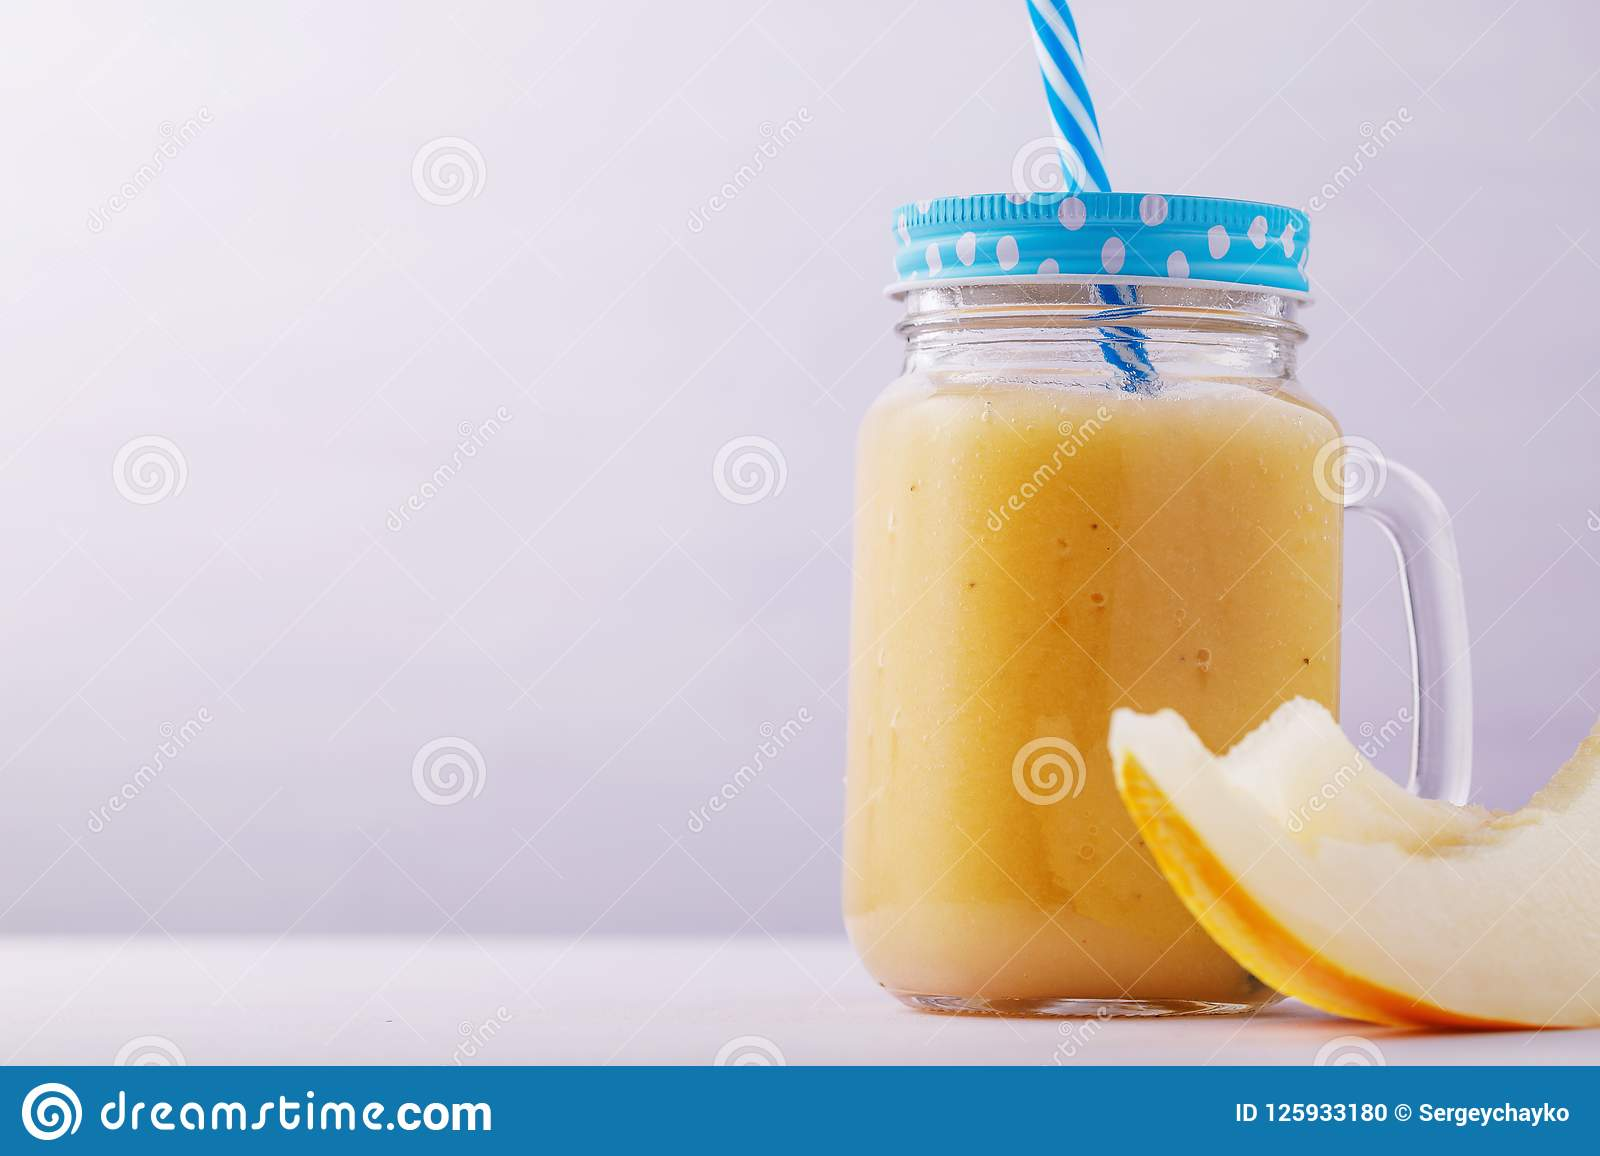 Smoothies in a glass jar, made from pieces of melon